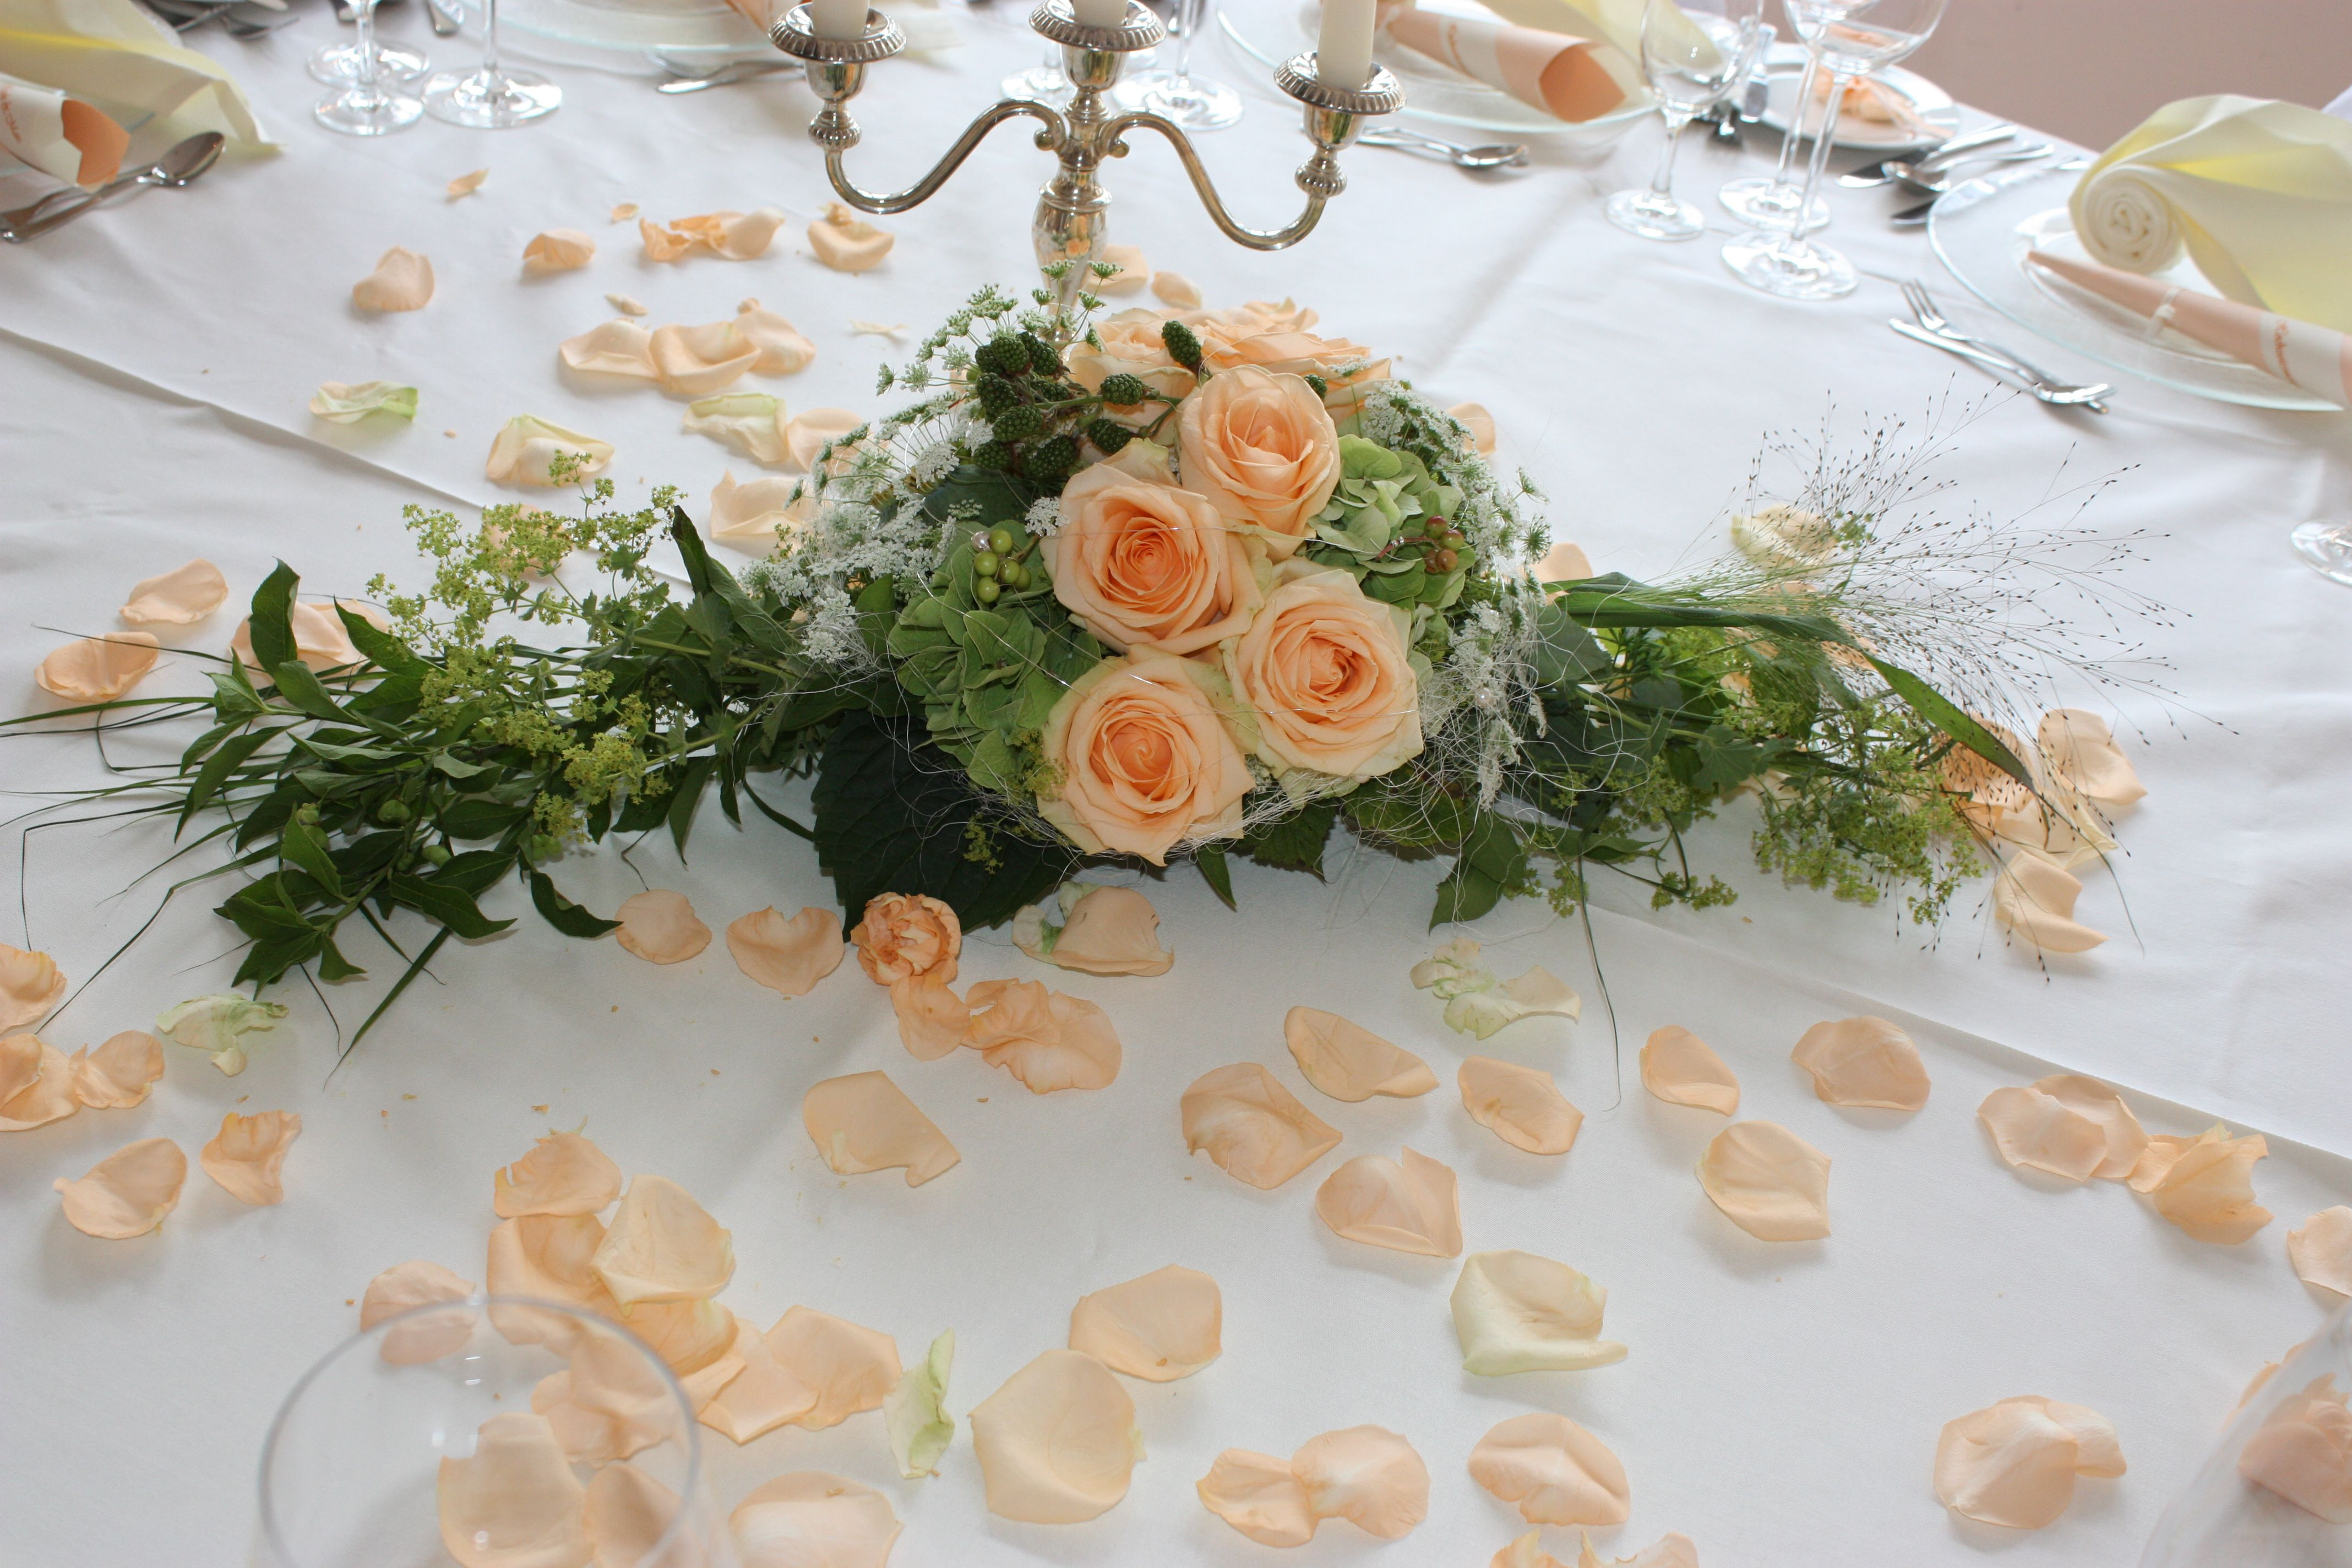 Apricot wedding  Meine Hochzeiten  Wedding decorations